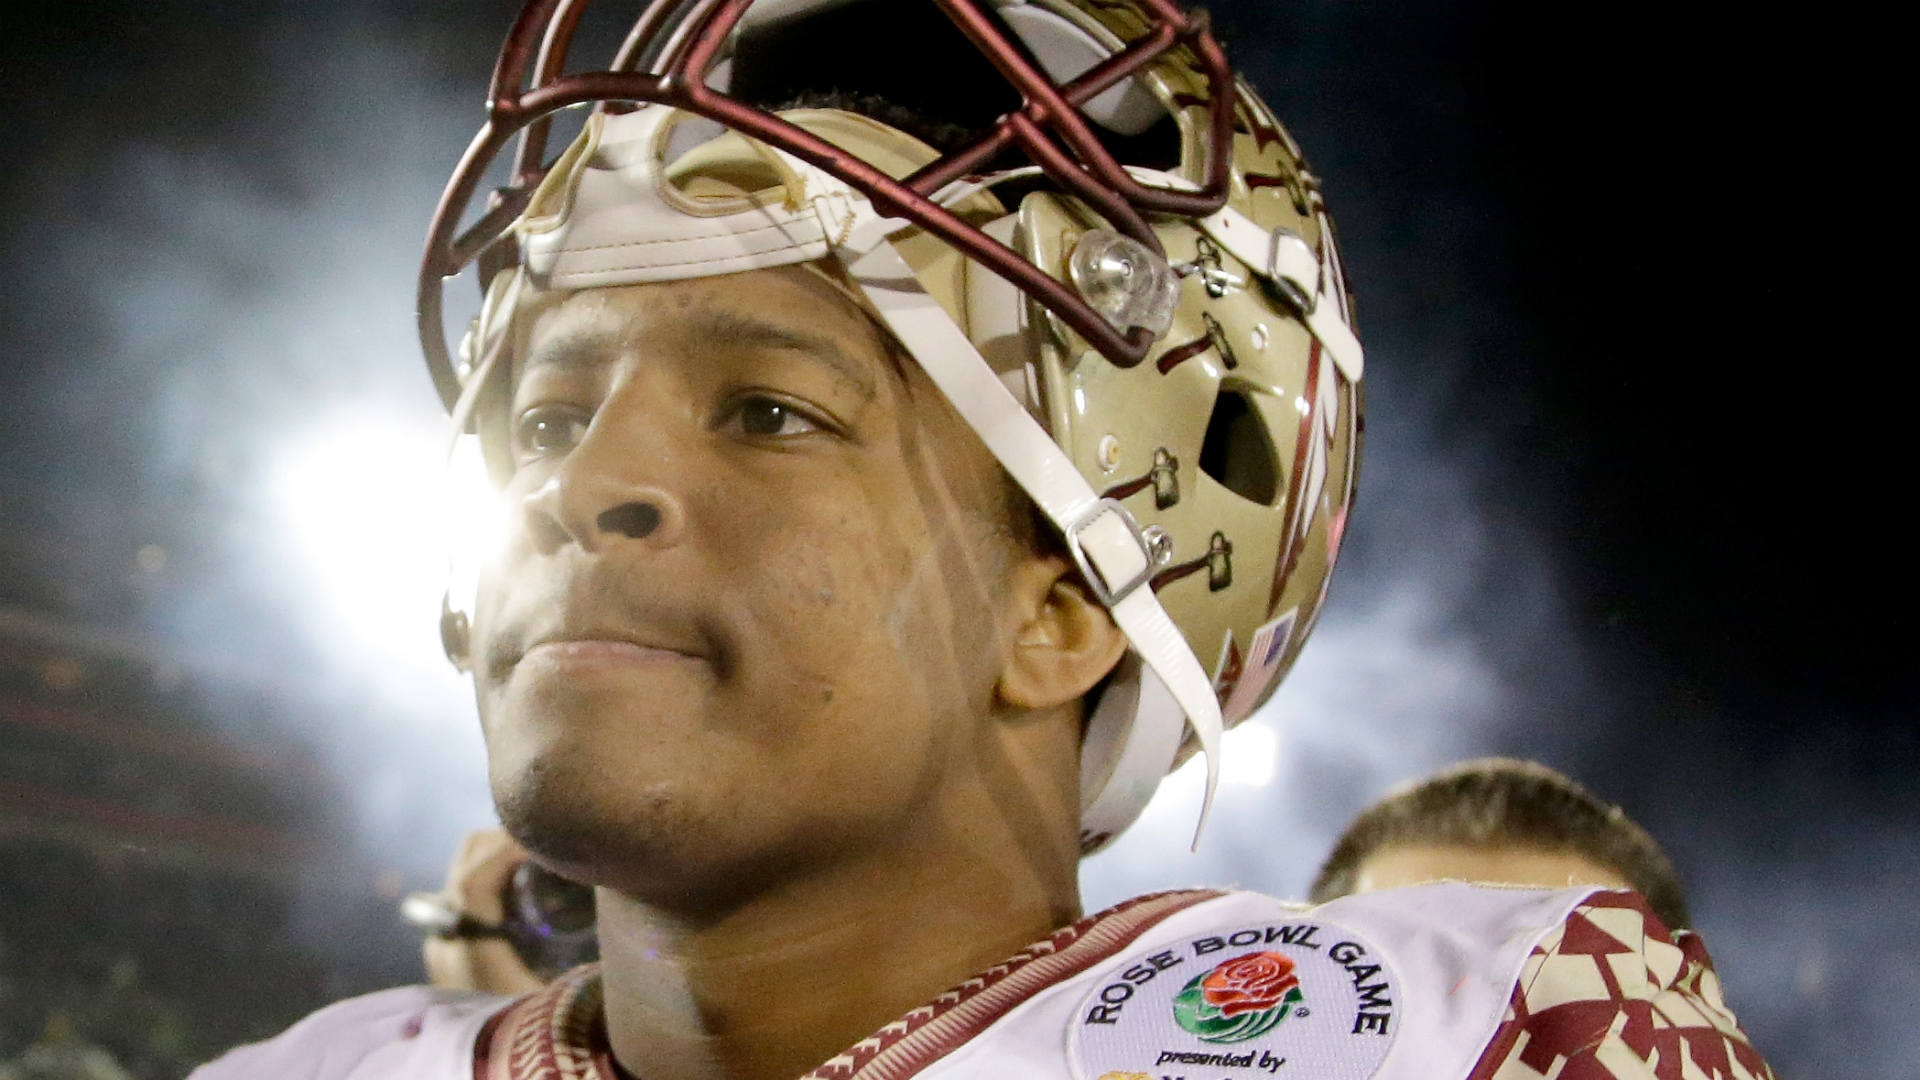 Jameis-Winston-FTR-010115-getty